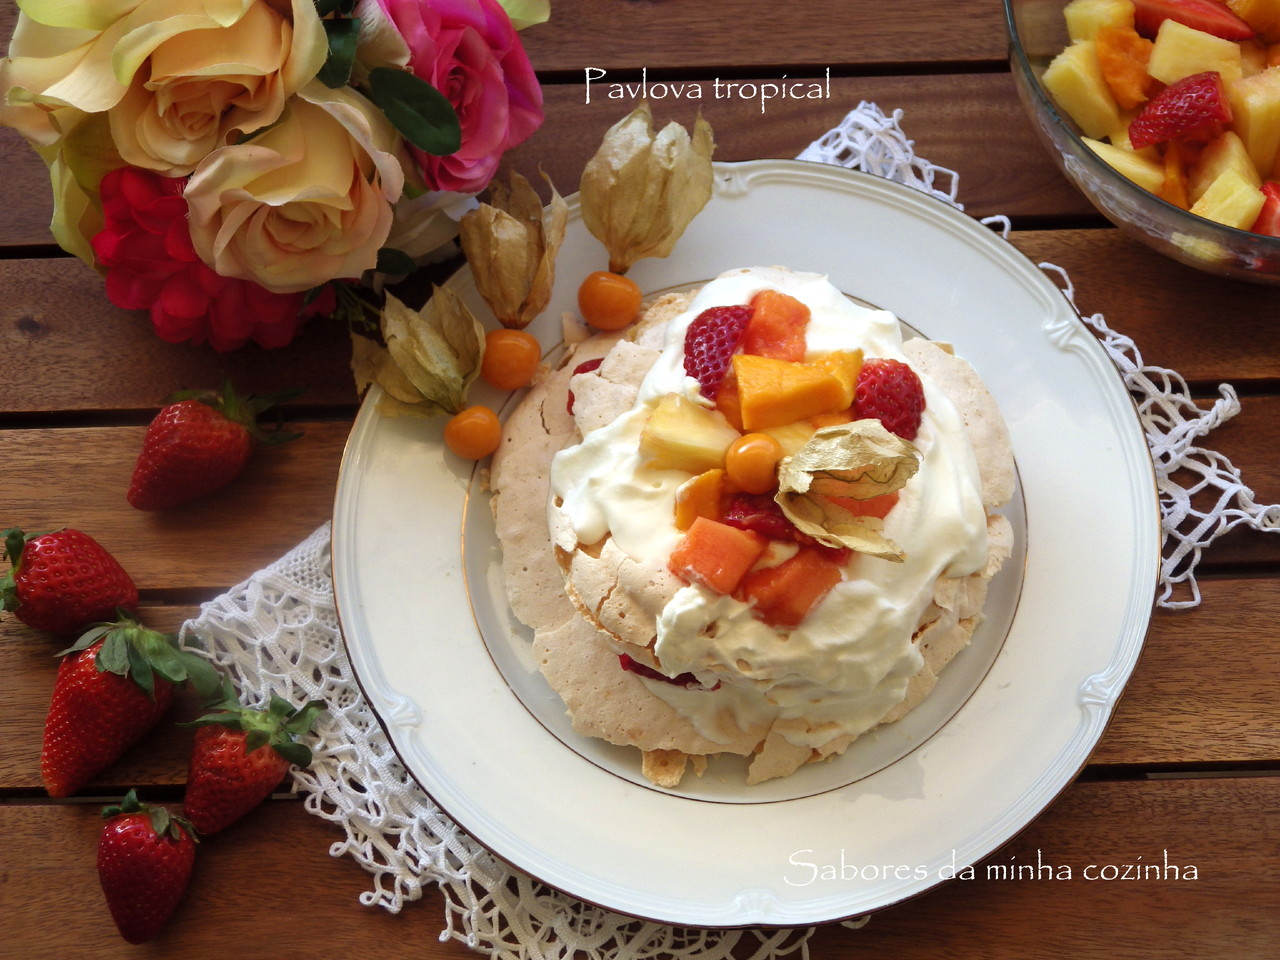 IMGP4677-Pavlova tropical-Blog.JPG